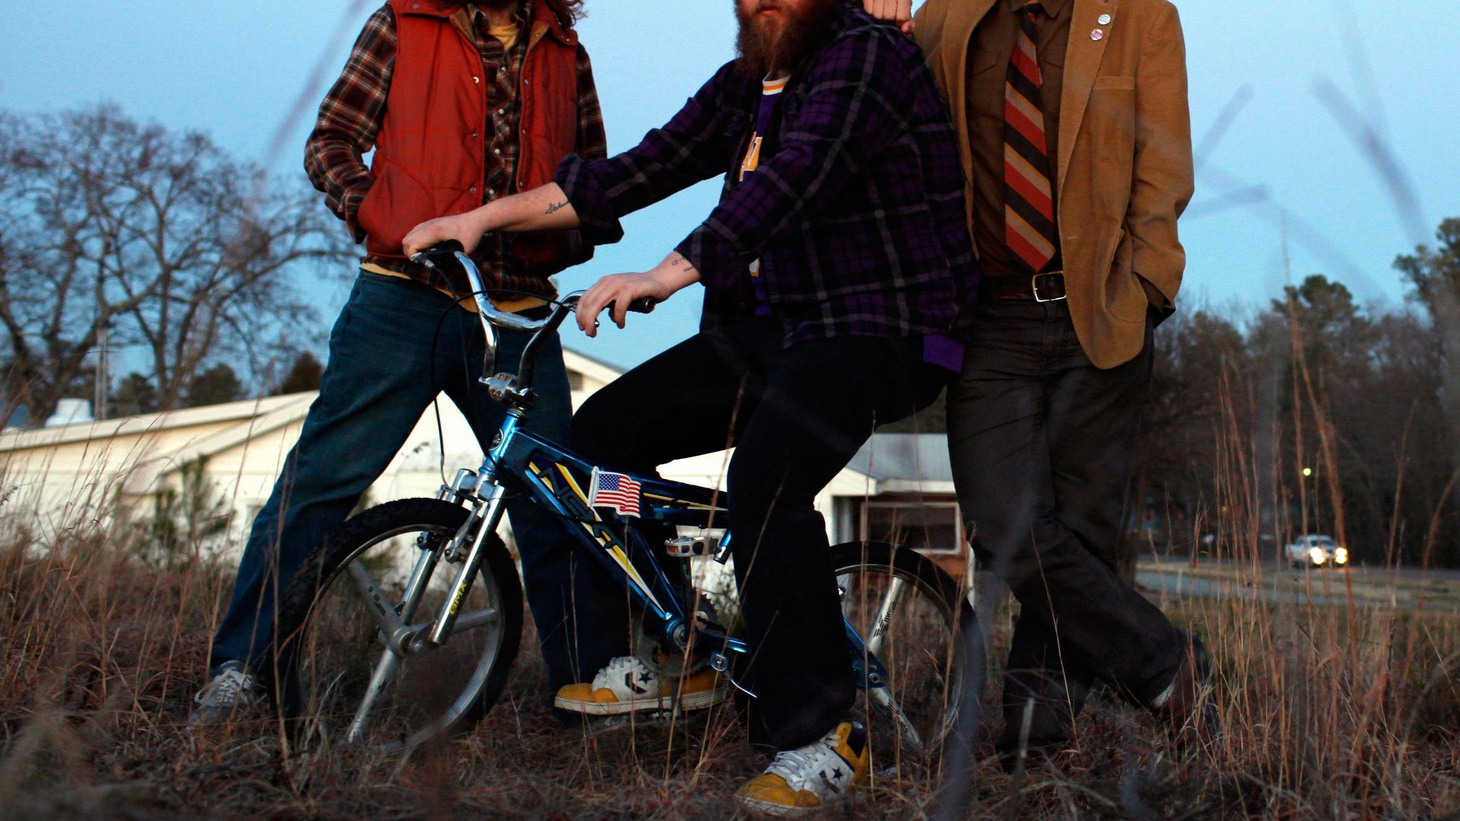 """The last couple of years have been busy for Megafaun, as the North Carolina trio tour the world sharing their music. A little downtime only spurred their creative juices, allowing them to release a mini-LP that lives somewhere between canyon rock and jangly pop. Today's Top Tune is the title track from """"Heretofore."""""""